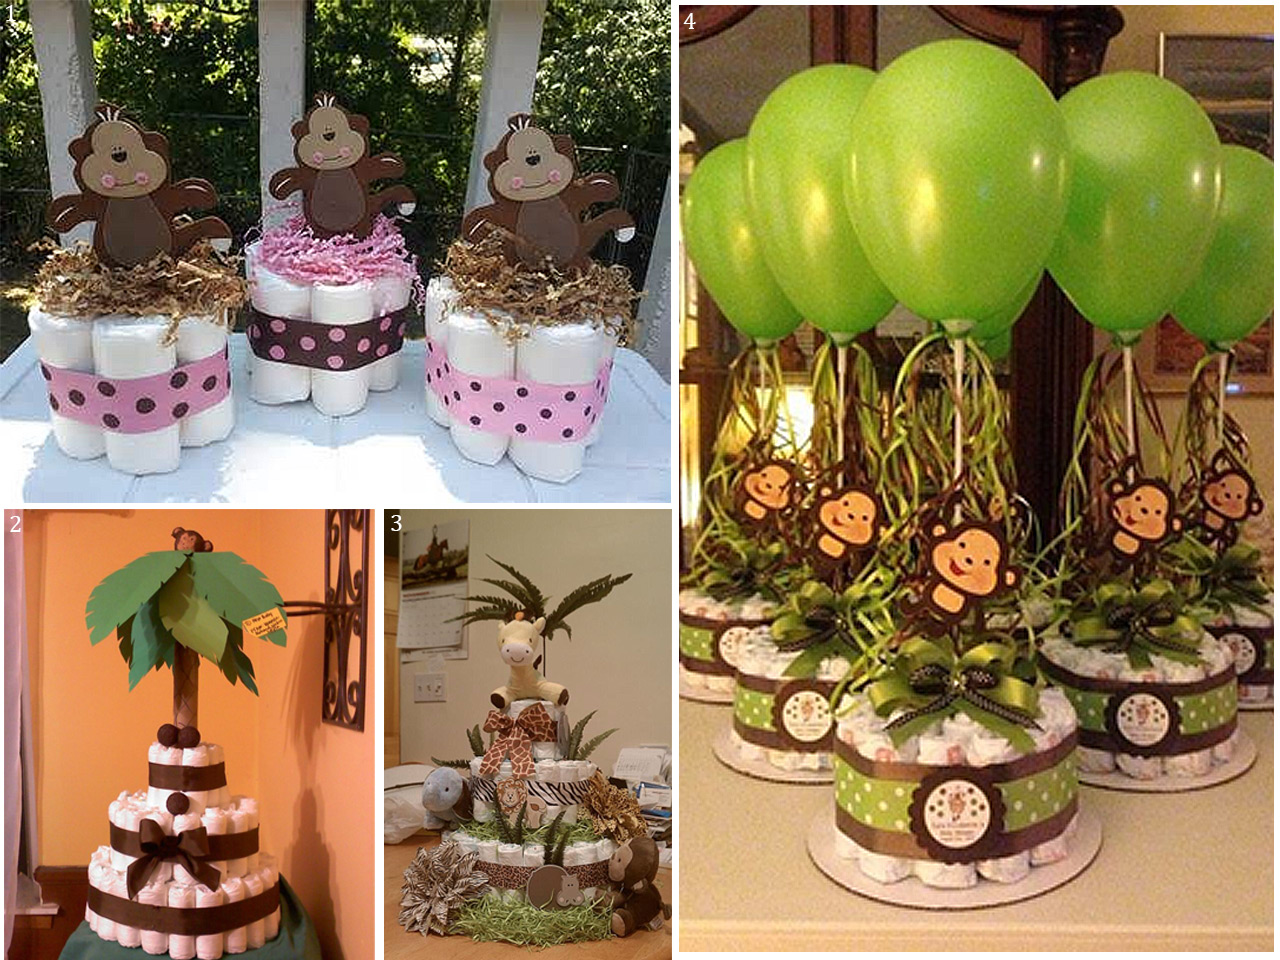 Decoraci n safari ideas para fiestas infantiles tem ticas for Decoracion cumpleanos nino